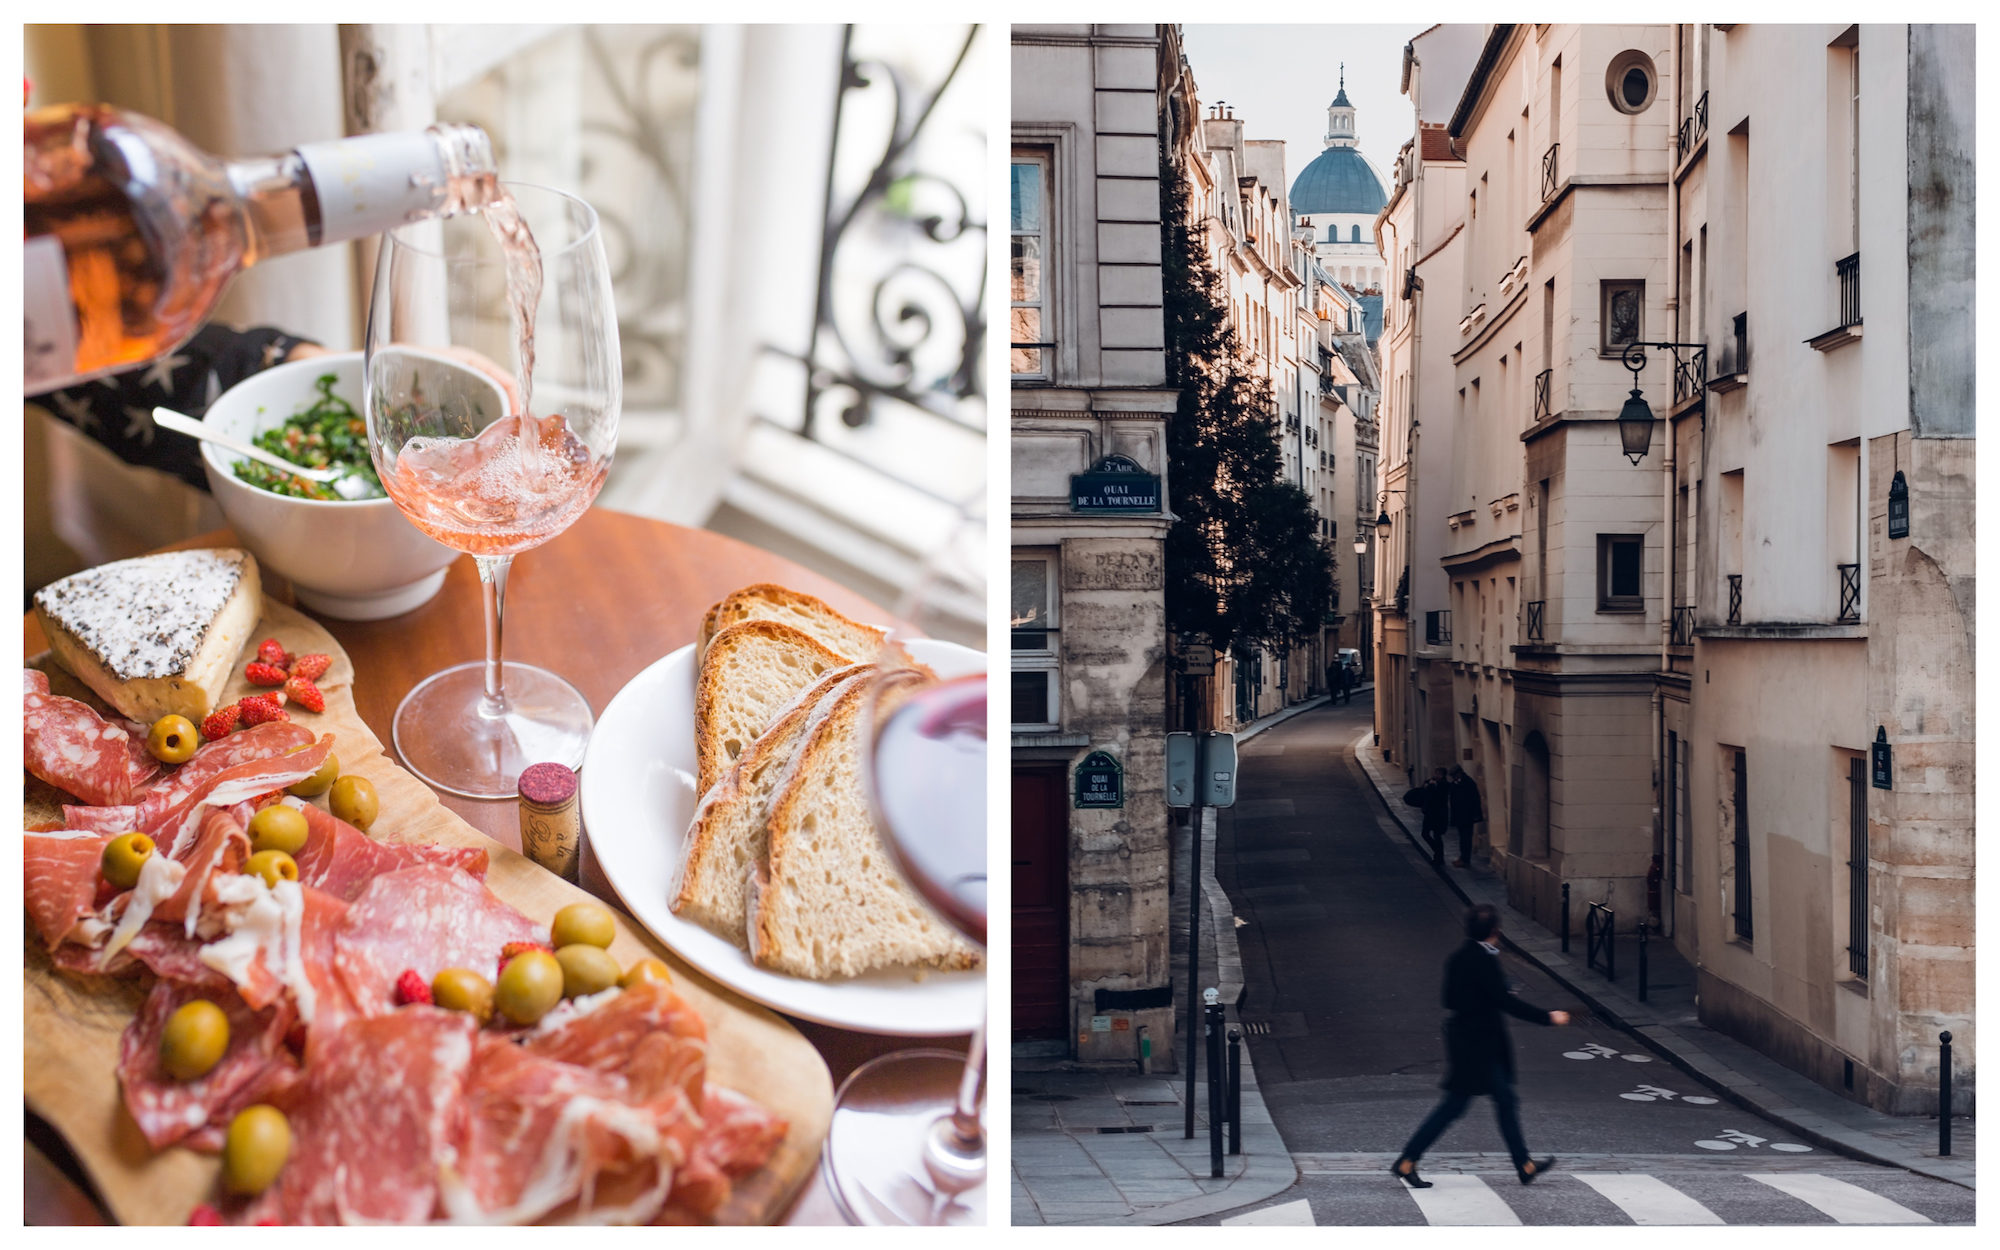 HiP Paris Blog tells the story of la rentree, when Parisians return to the city after summers of aperitifs of hams and wine (left). Paris is quietest in the summer and it's possible to have the city to yourself (right).